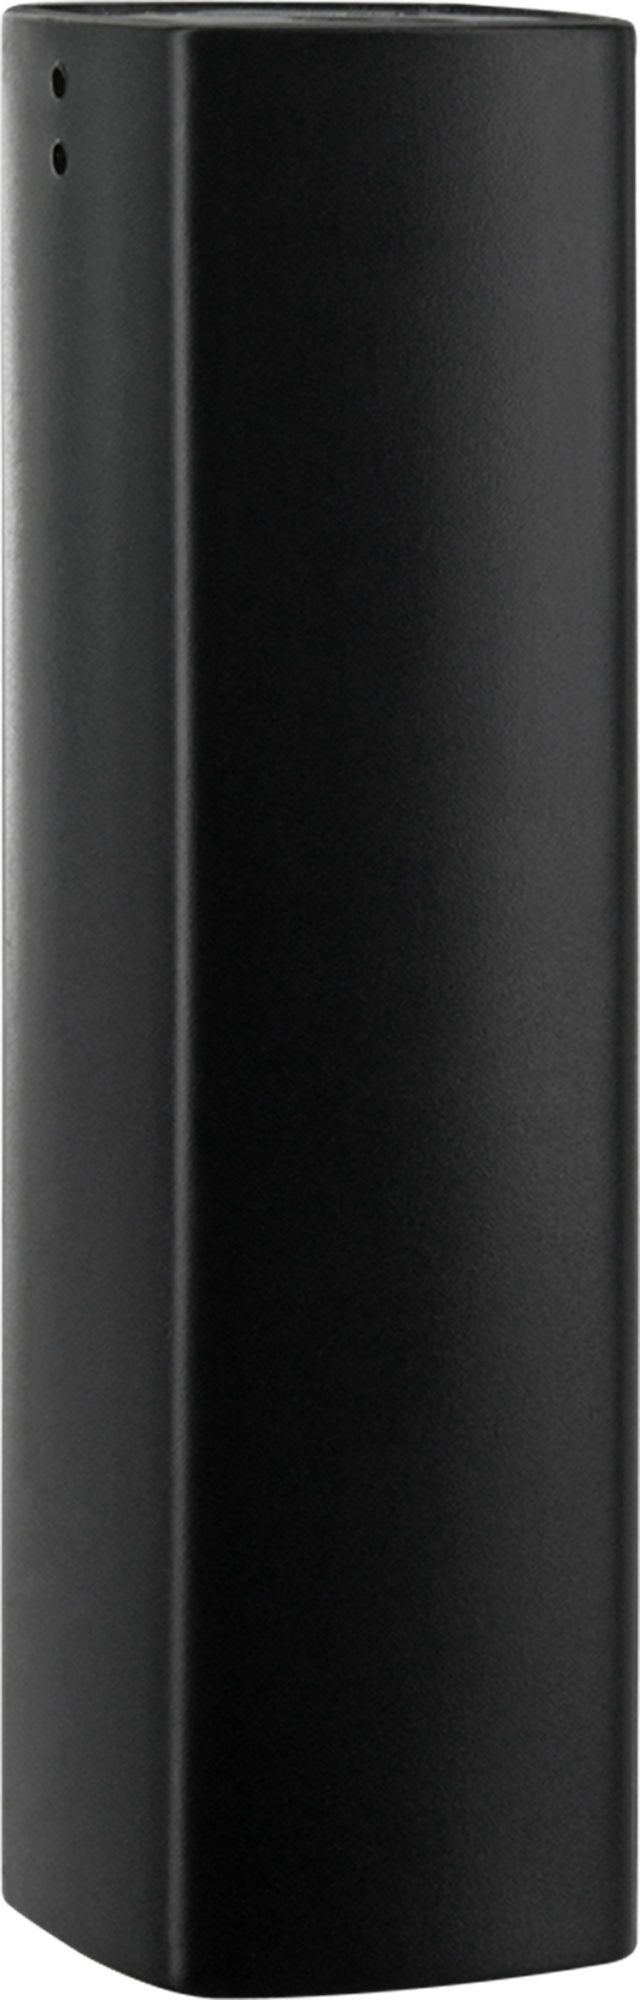 Power bank 2200mAh (noir) - Packshot